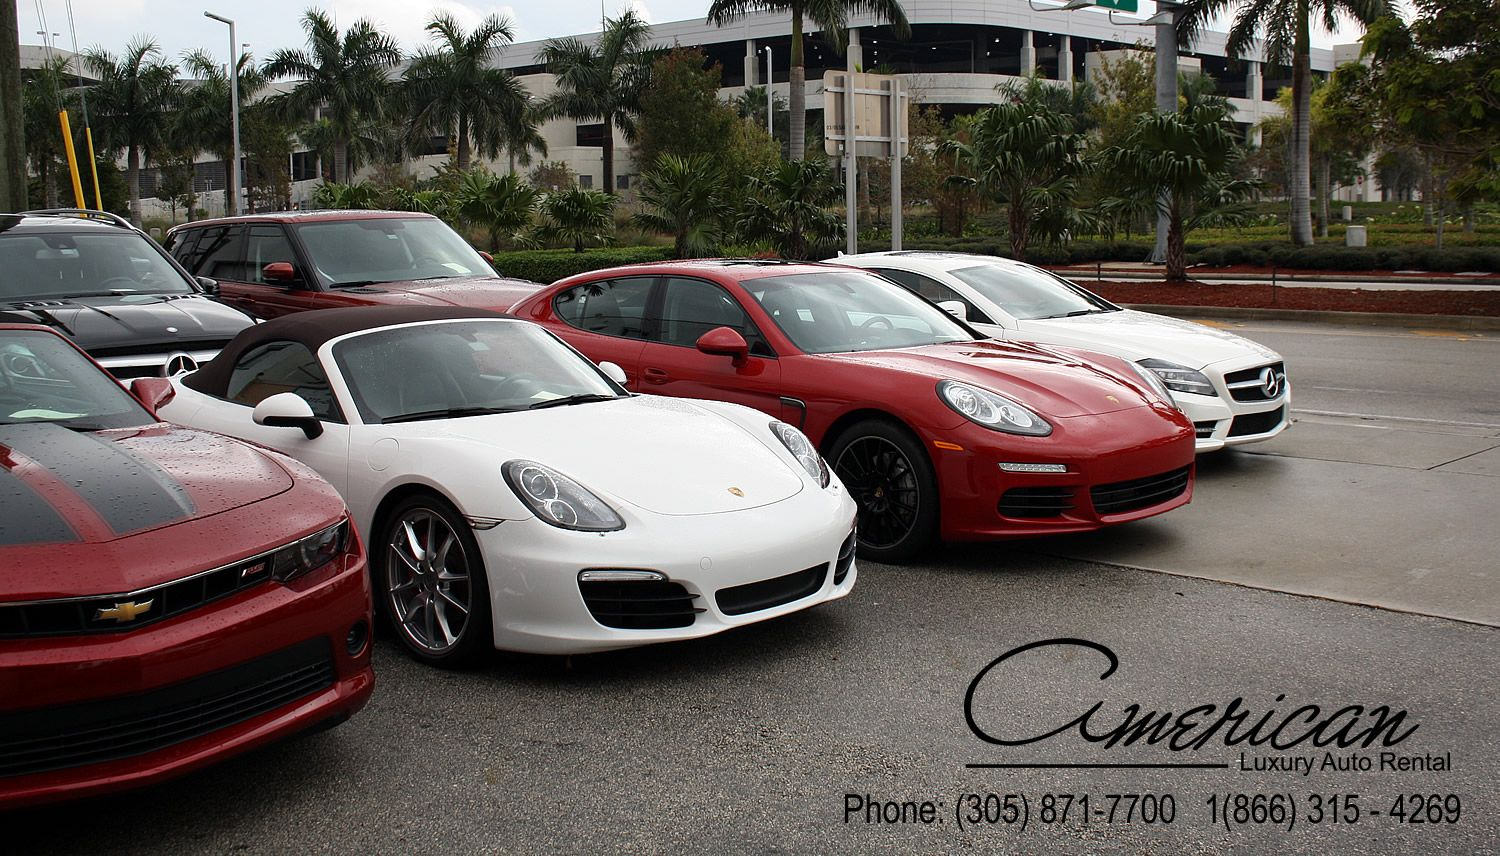 Exotic Car Rental Cleveland 12